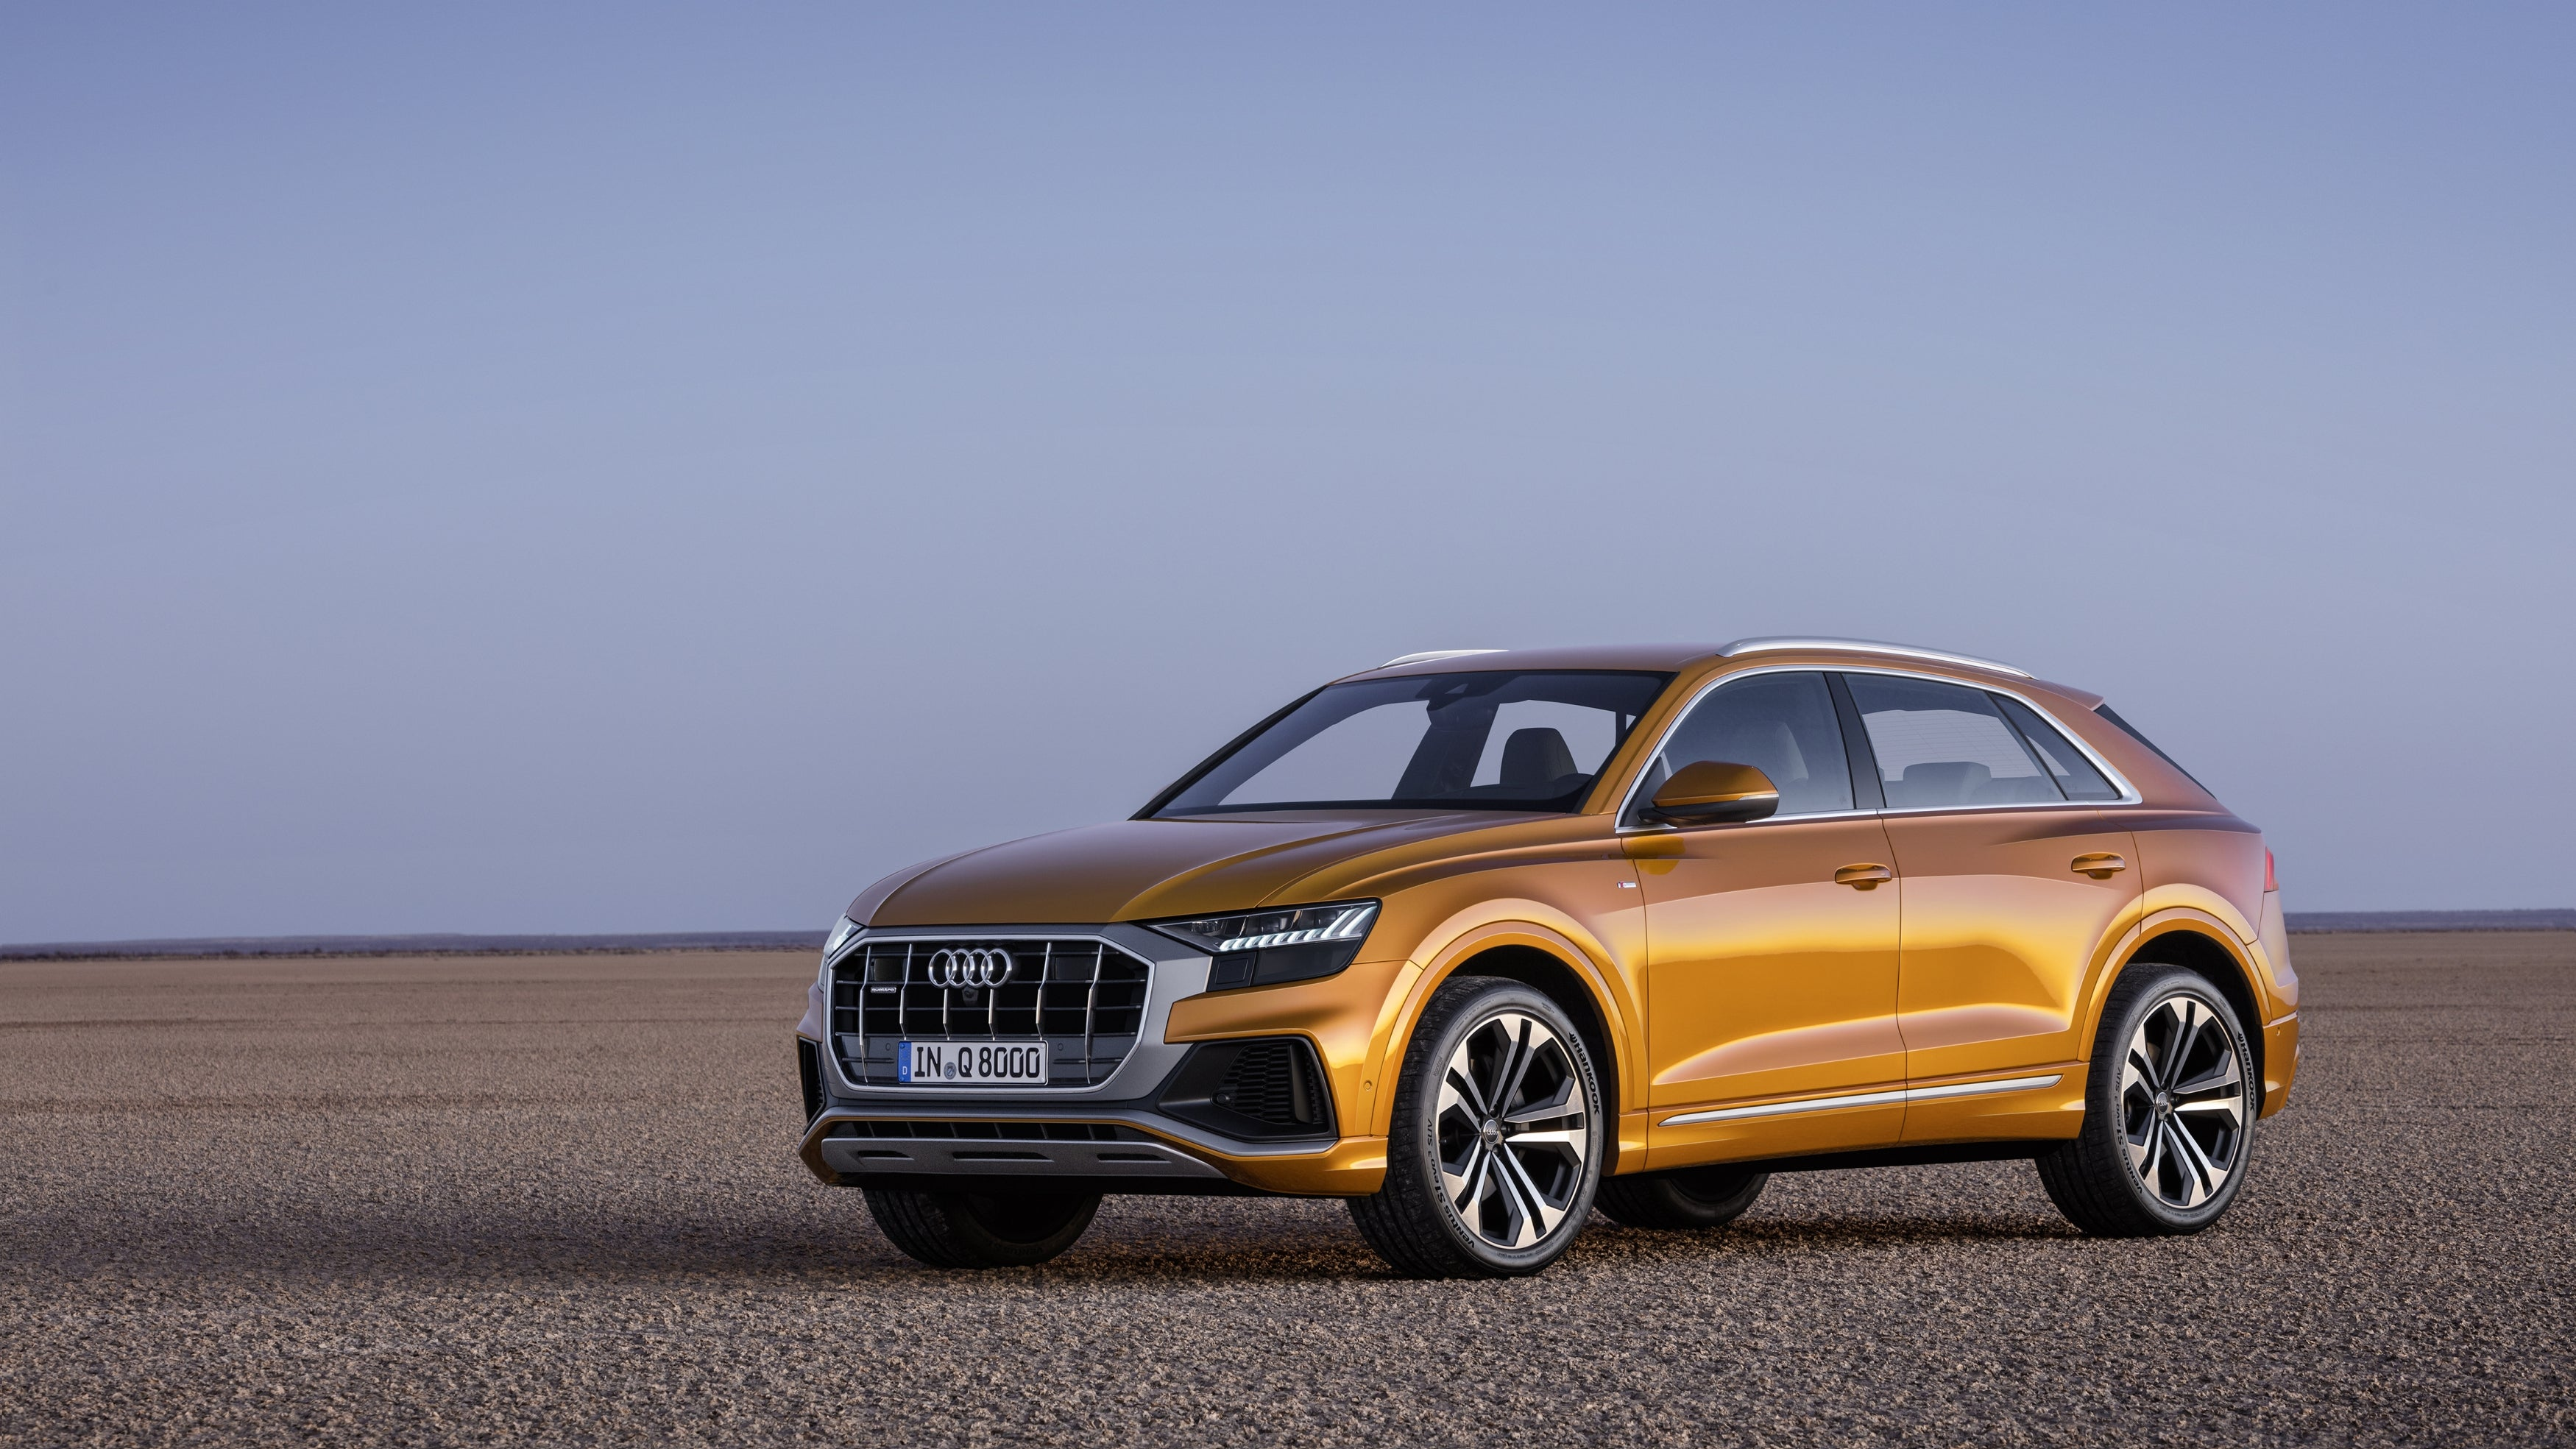 The Audi Q8 has design touches from the storied Audi Quattro rally car.